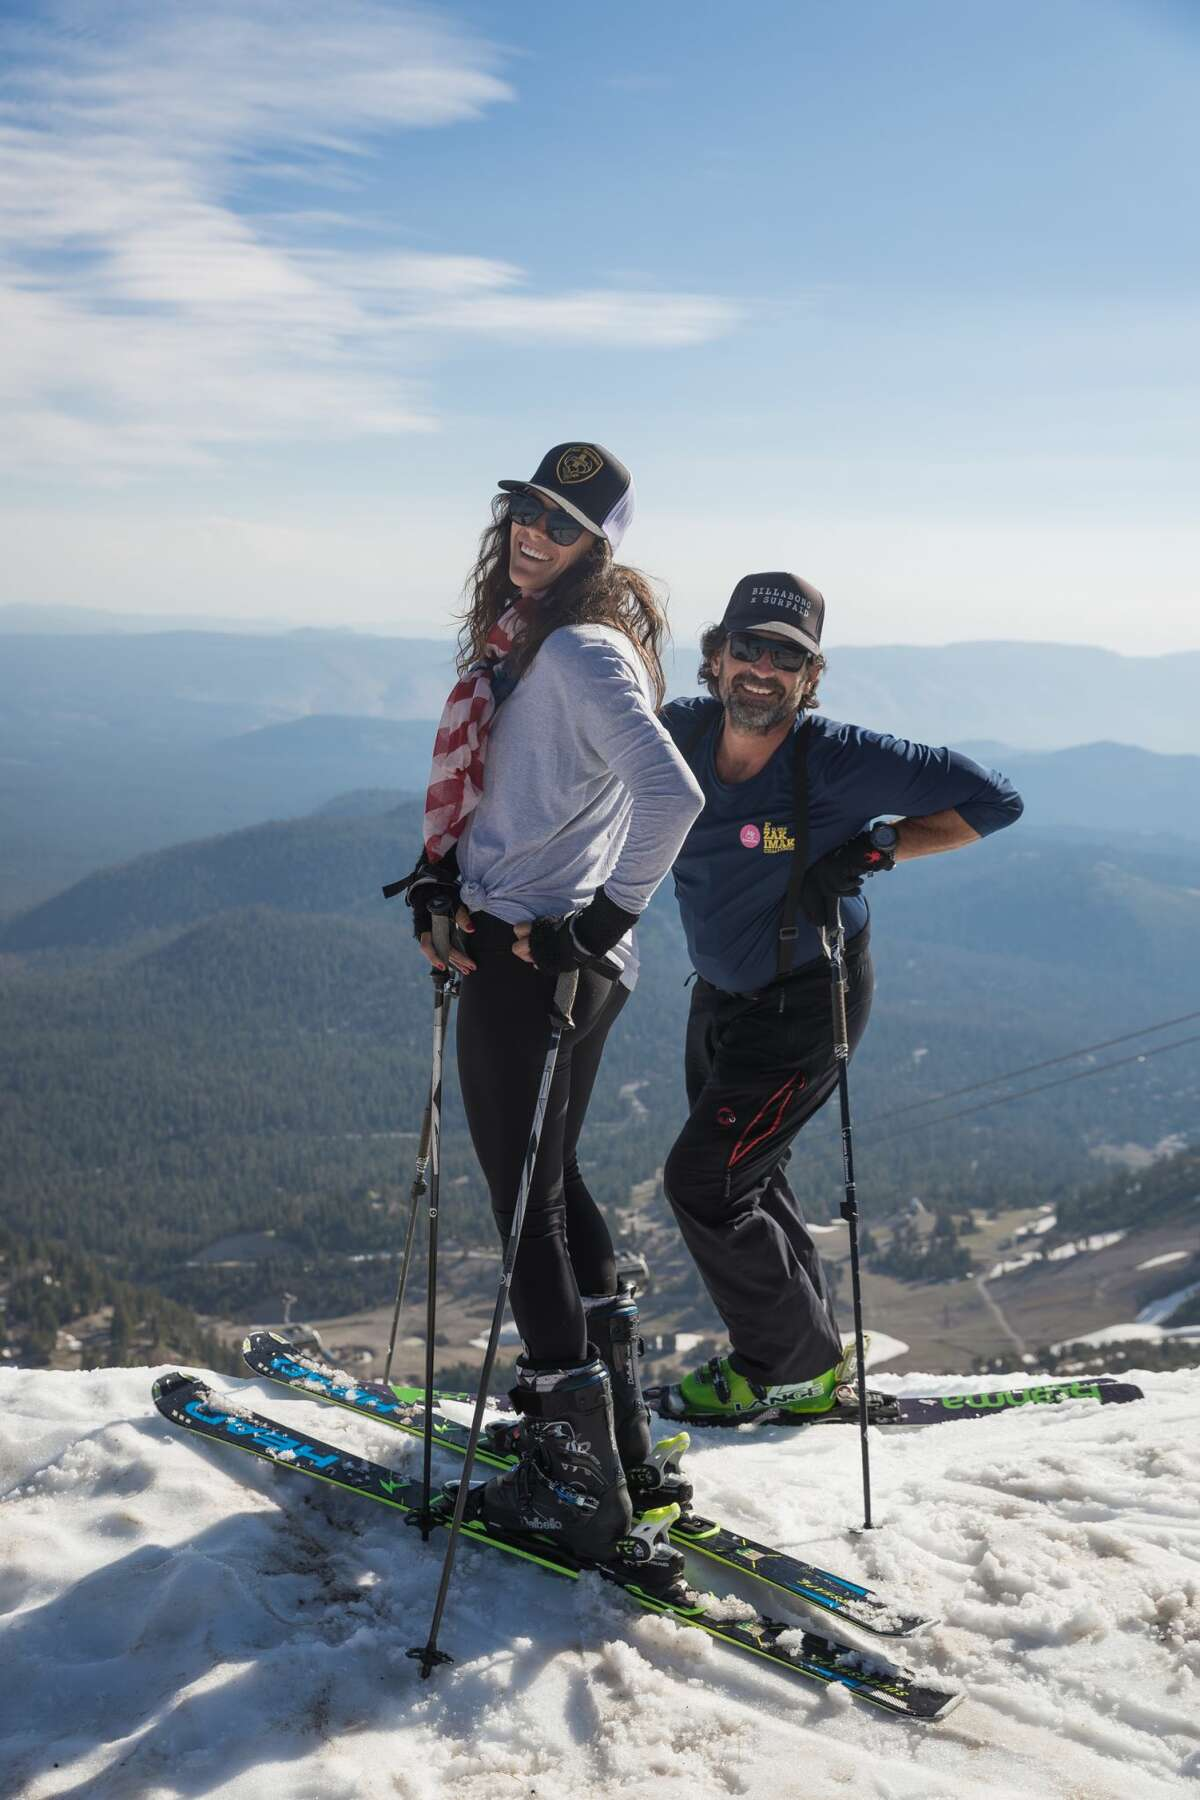 Skiers and snowboarders enjoy summer skiing at Mammoth Mountain on July 24, 2017.